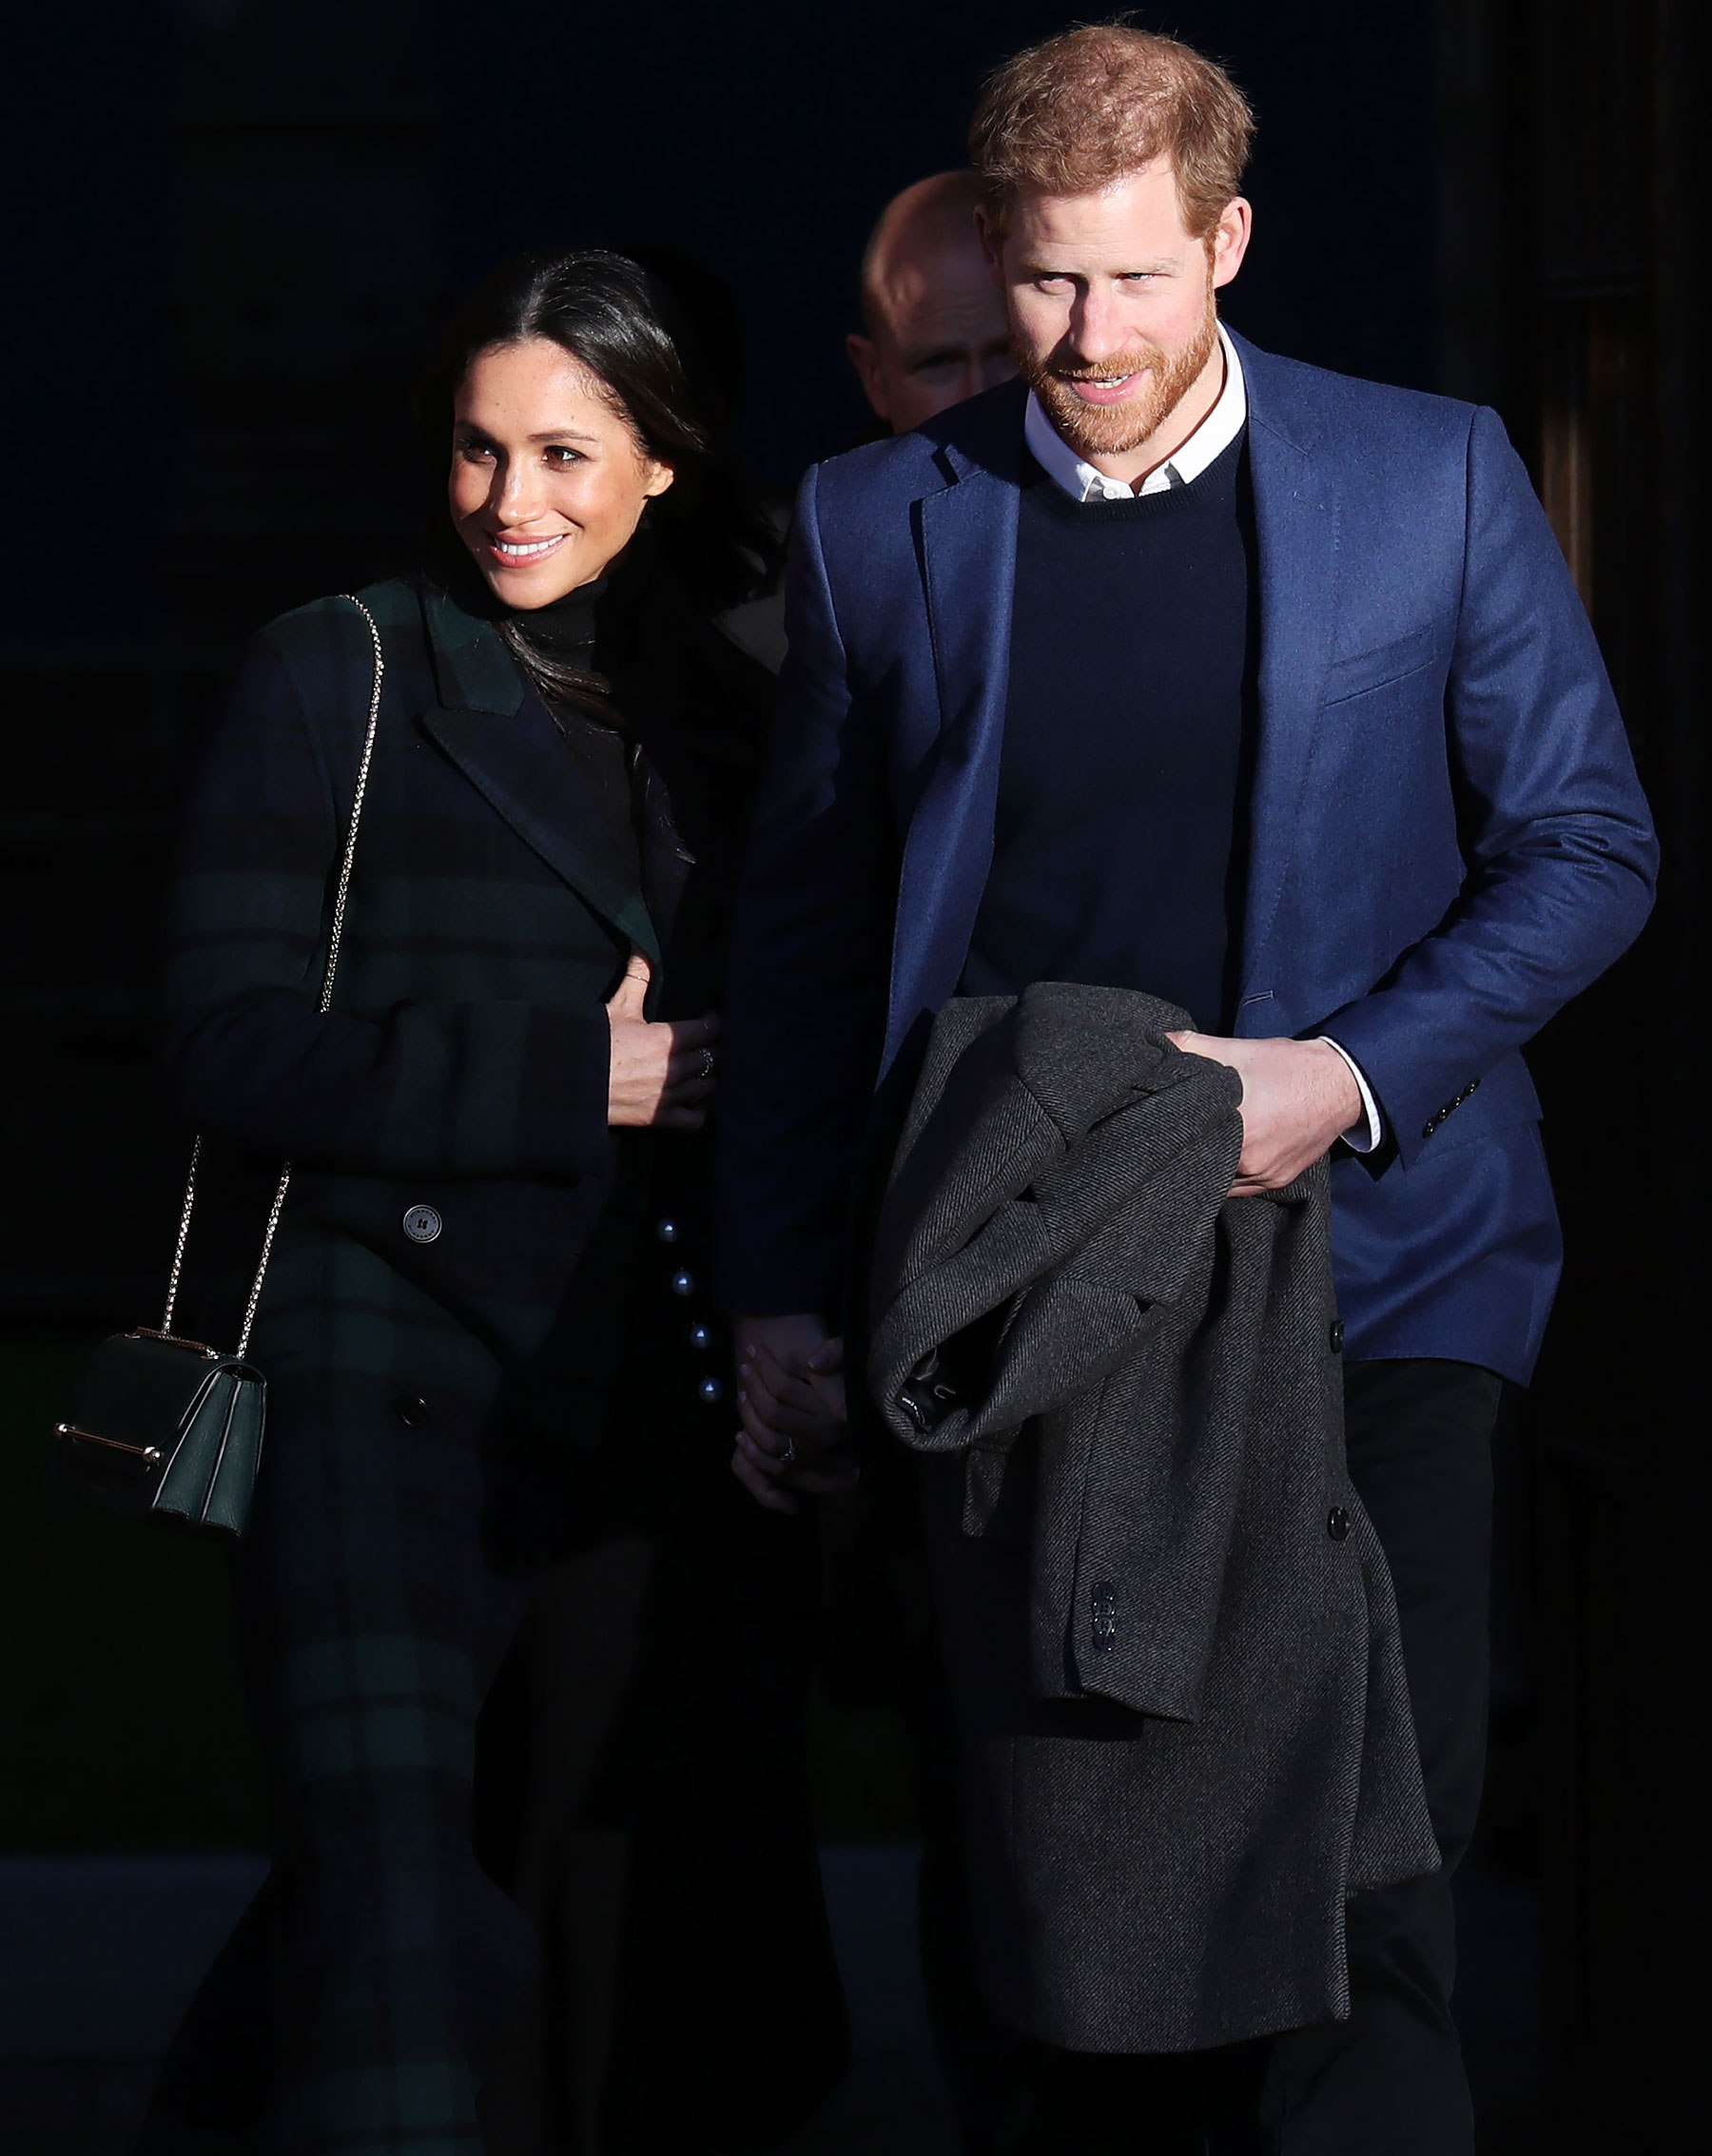 Anthrax scare after an envelope containing white powder was sent to the couple at Kensington Palace